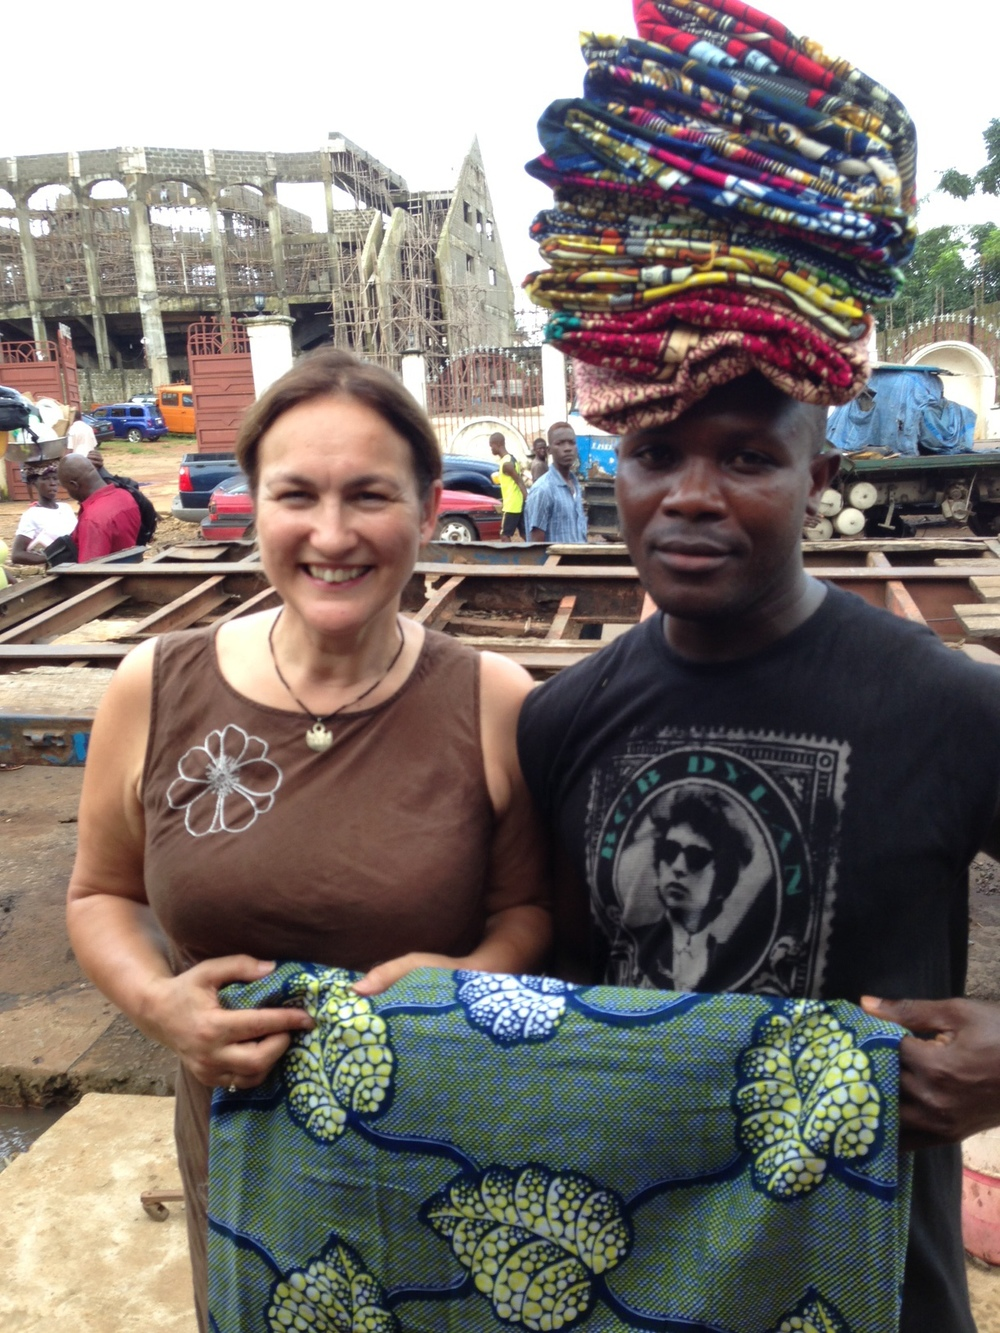 Buying Sierra Leone fabric in Freetown